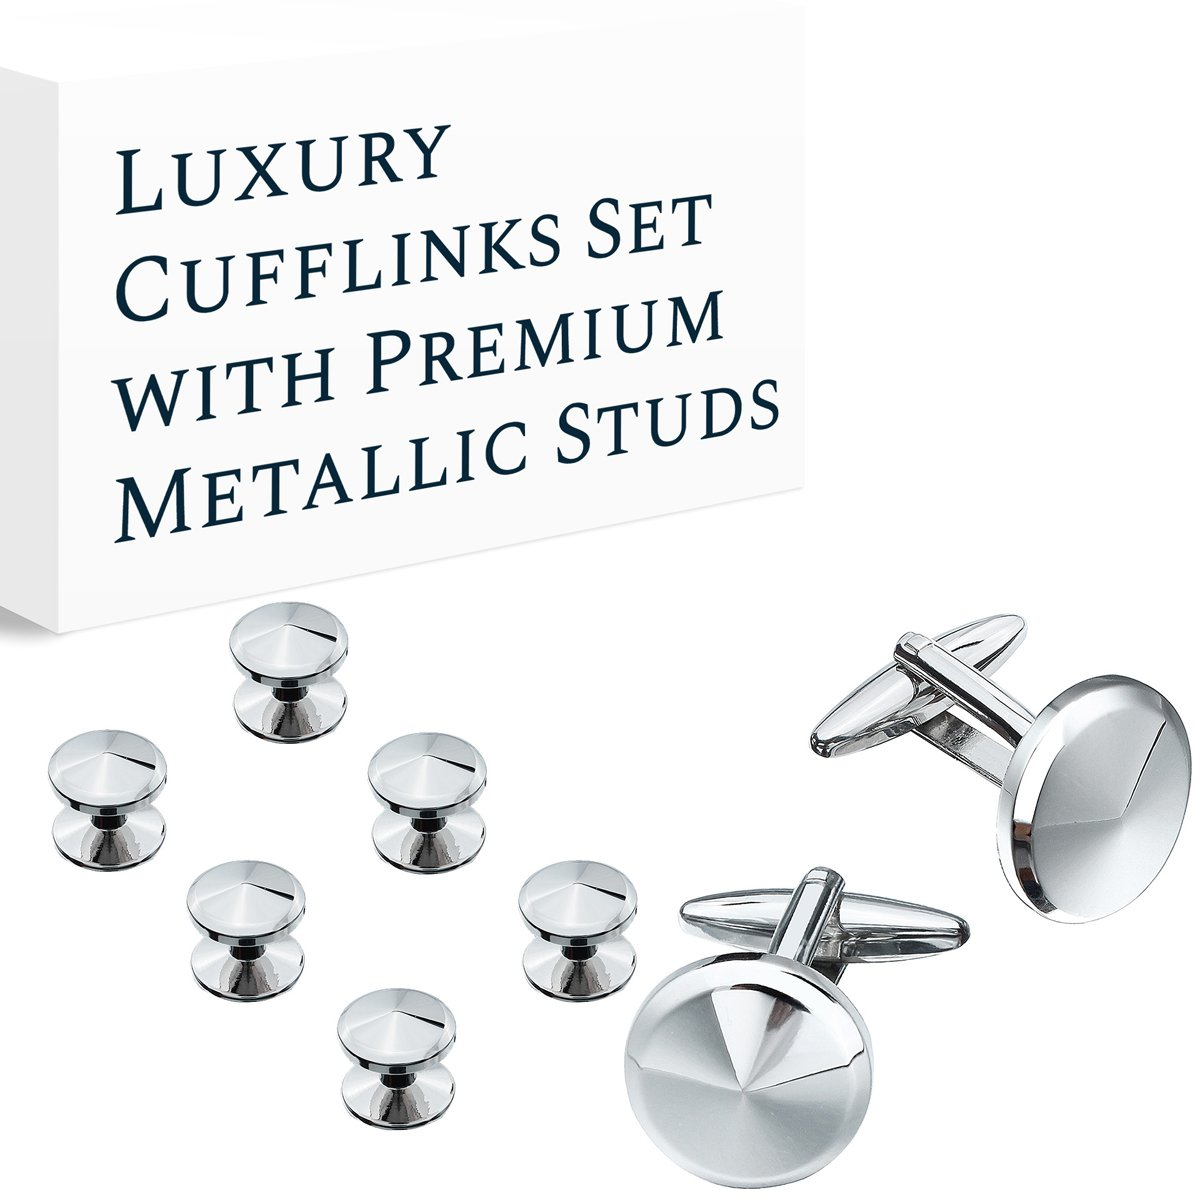 HAWSON Cufflink and Studs Tuxedo Set Rose Gold Silver Black and Gold Color with Platinum Finish Two Cufflinks with Six Shirt Studs in Stylish Velvet Gift Bag 400372